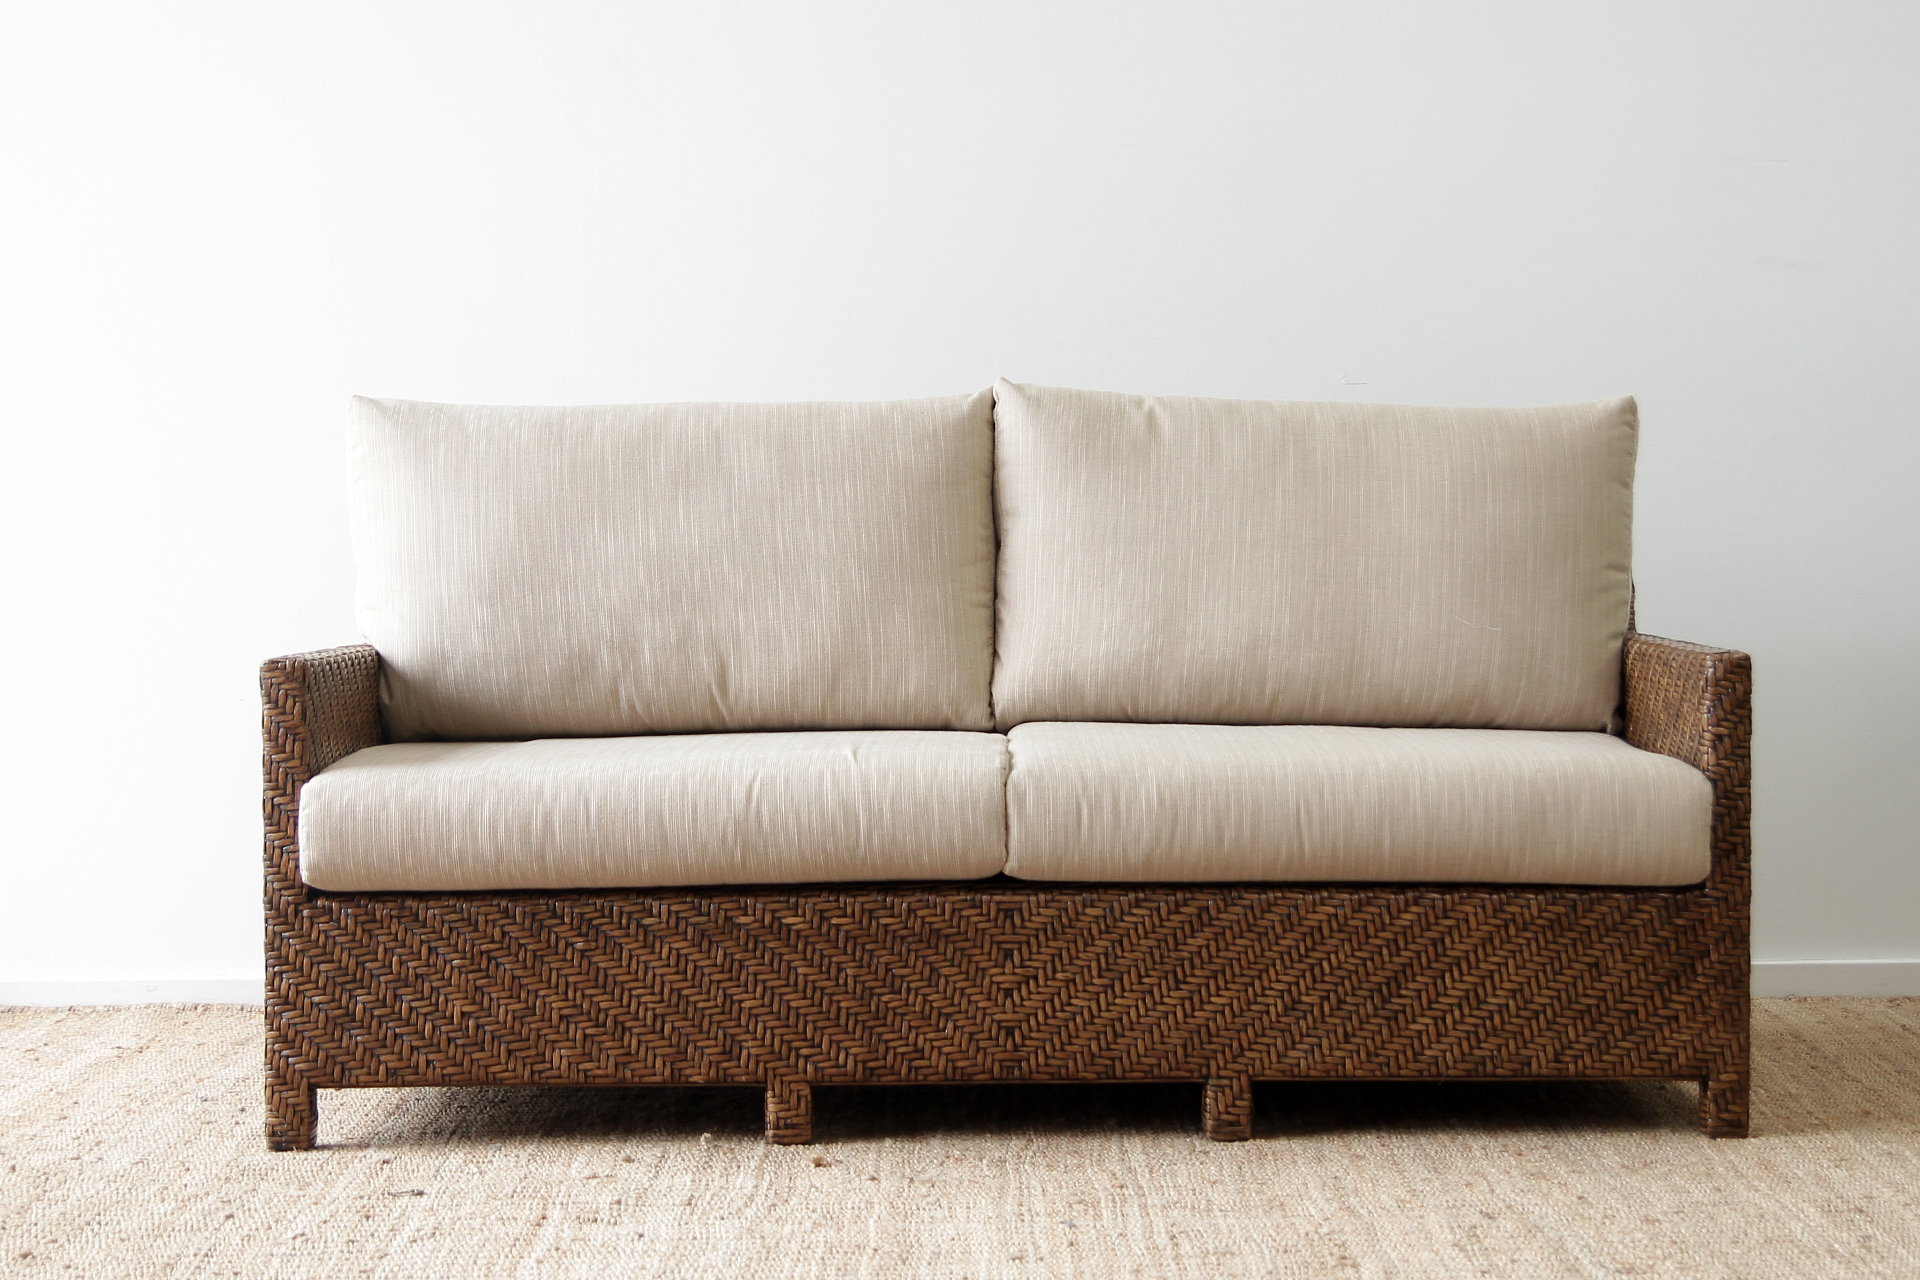 sienna sofa sleeper gray sectional with chaise bed double size naturally cane rattan and